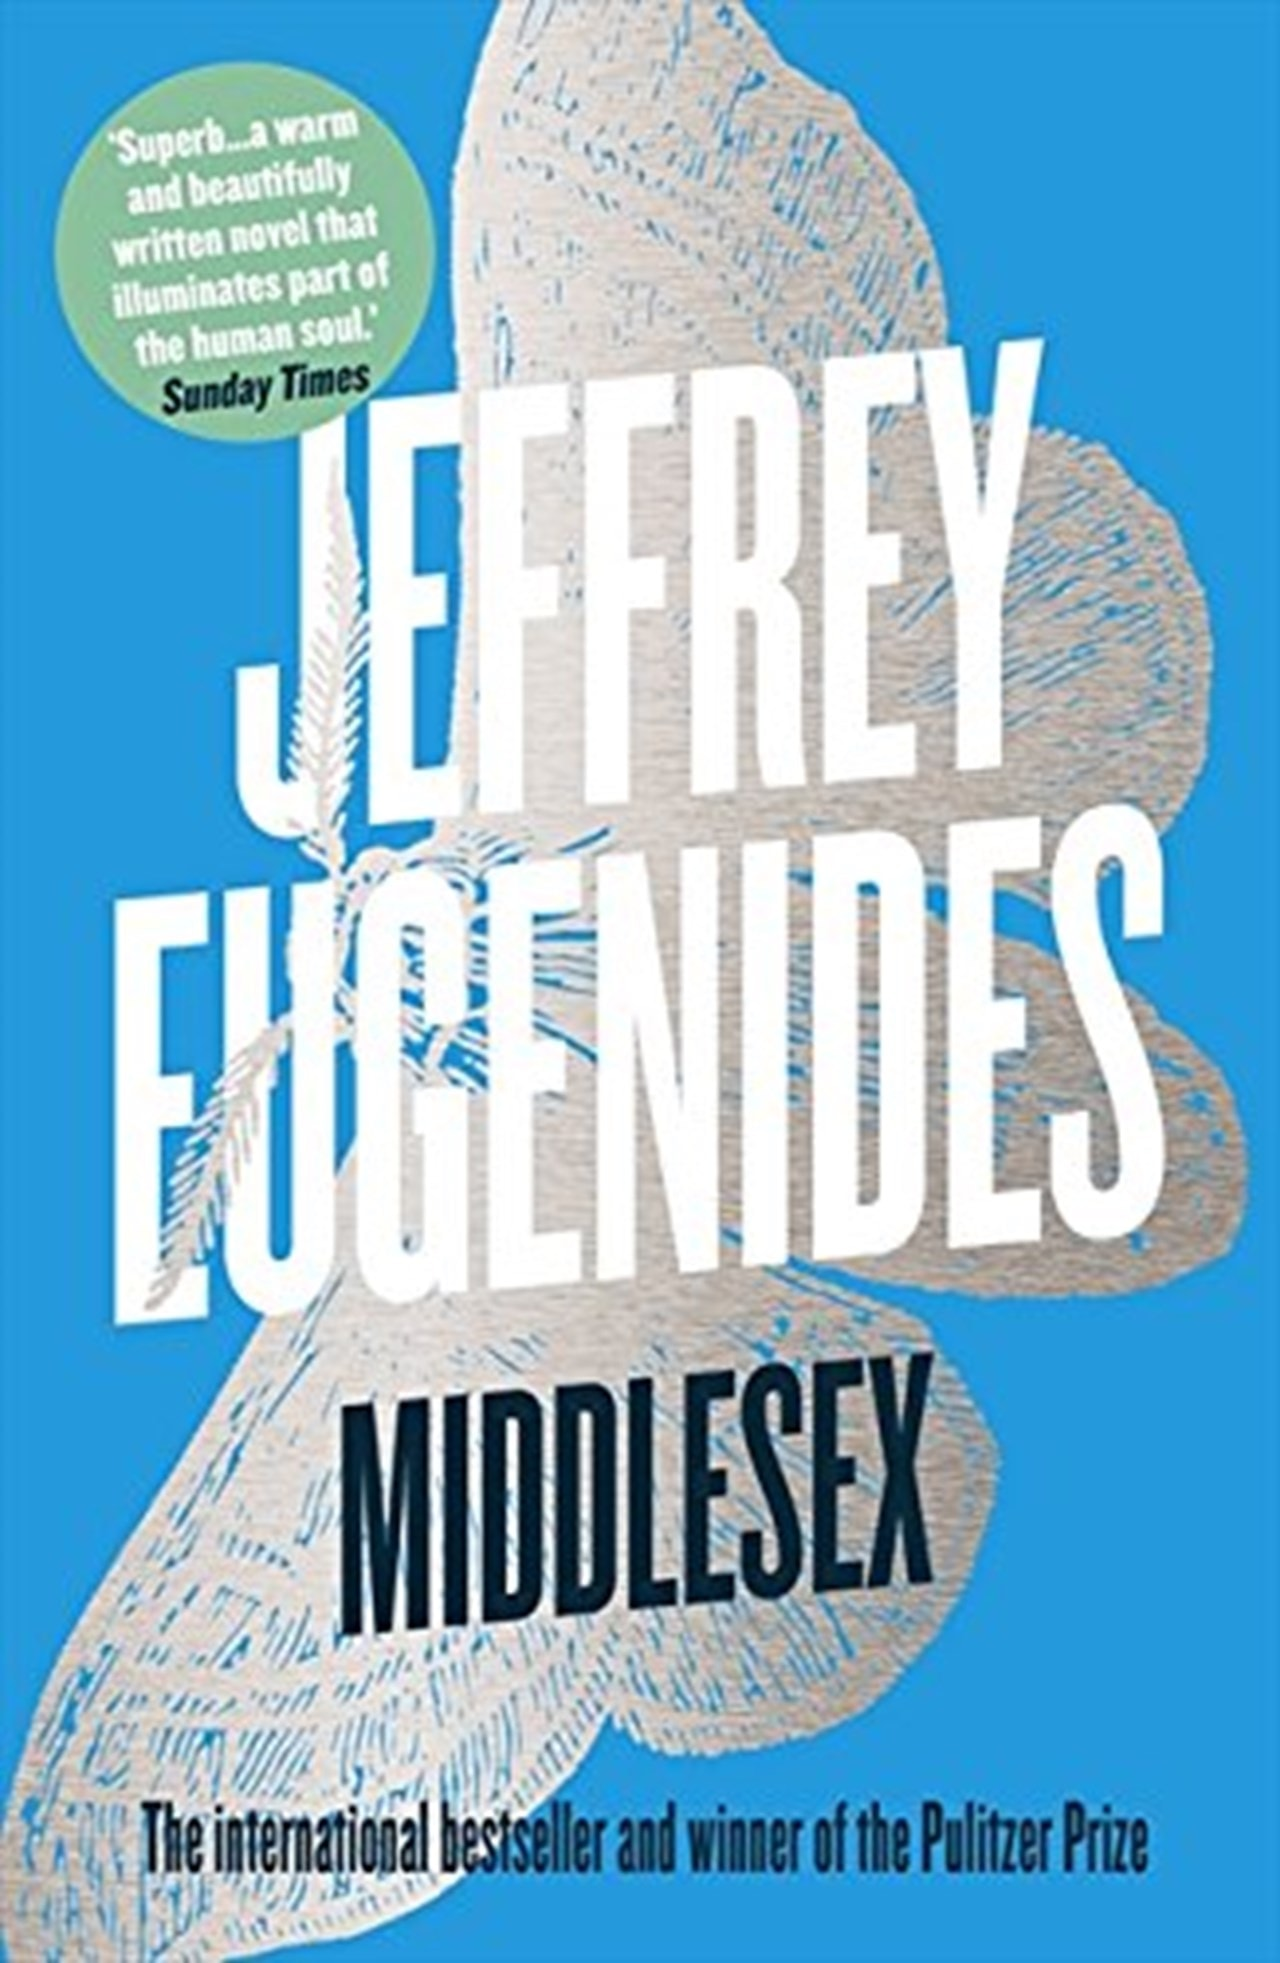 Middlesex - 1